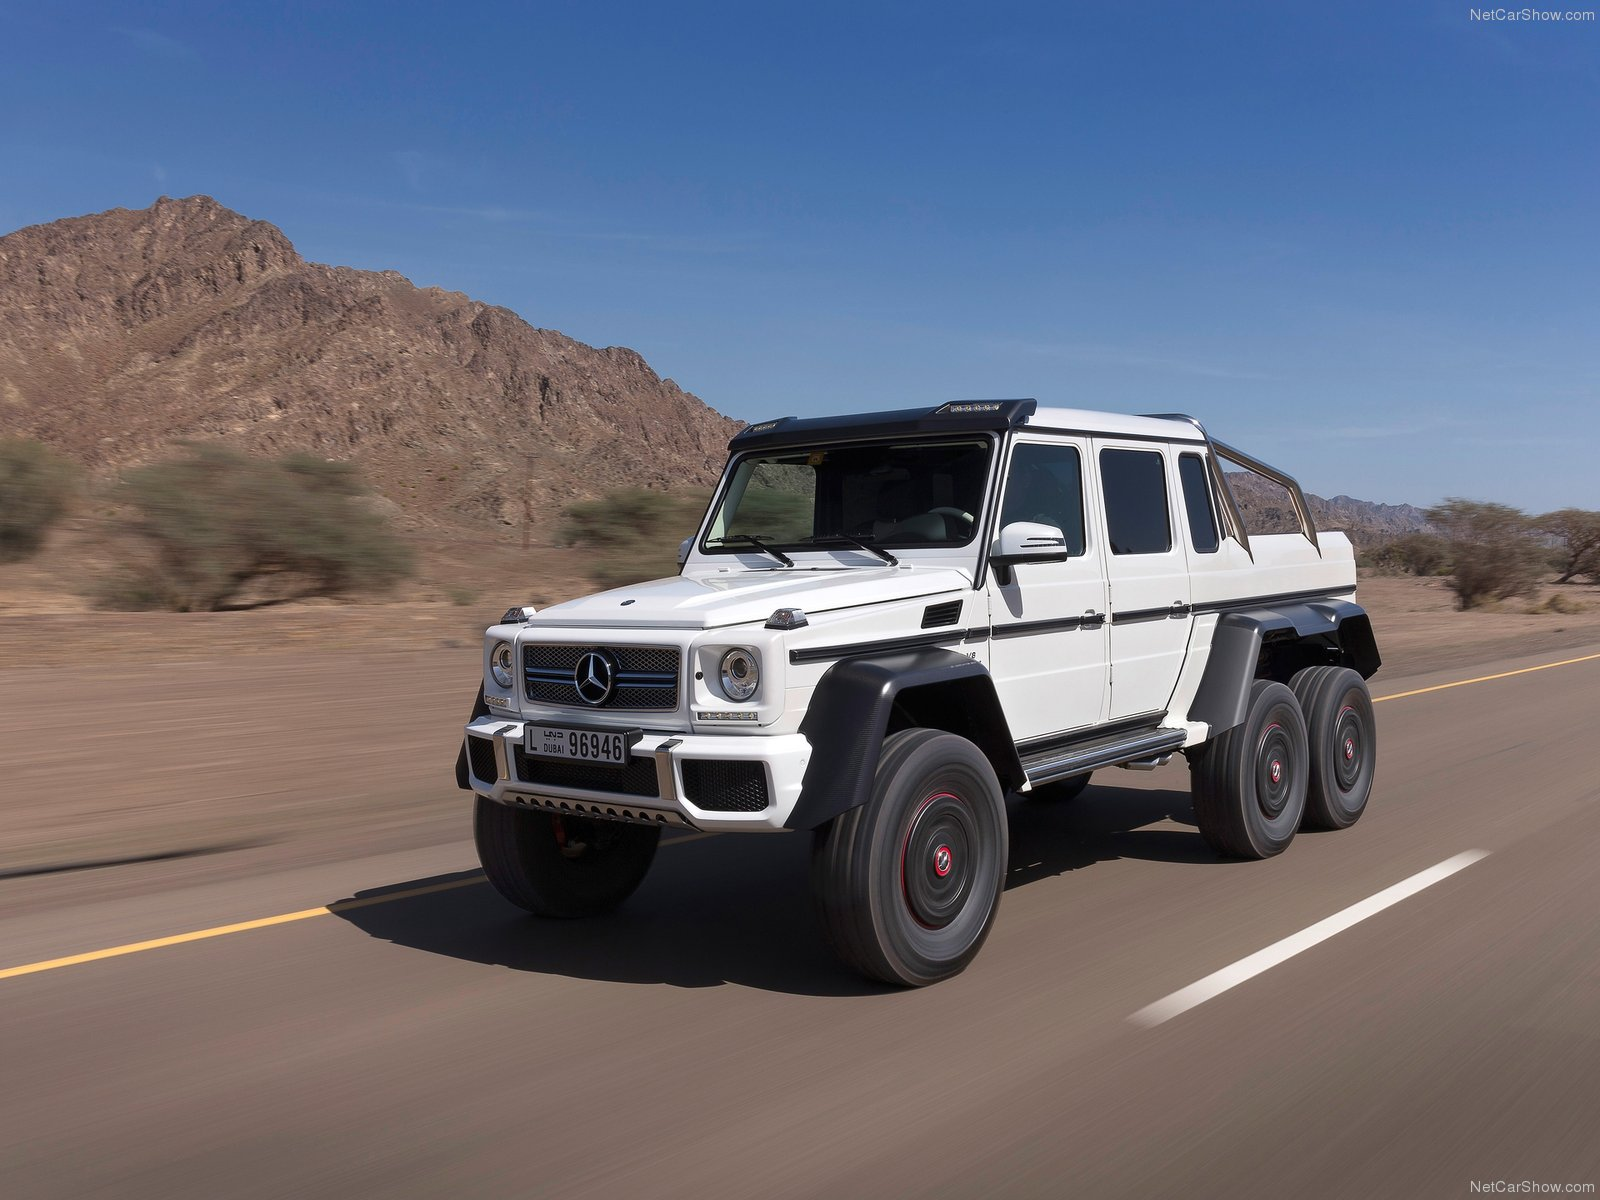 Autoart To Make Mercedes Benz G63 Amg 6 6 Concept In 1 18 Scale Xdiecast